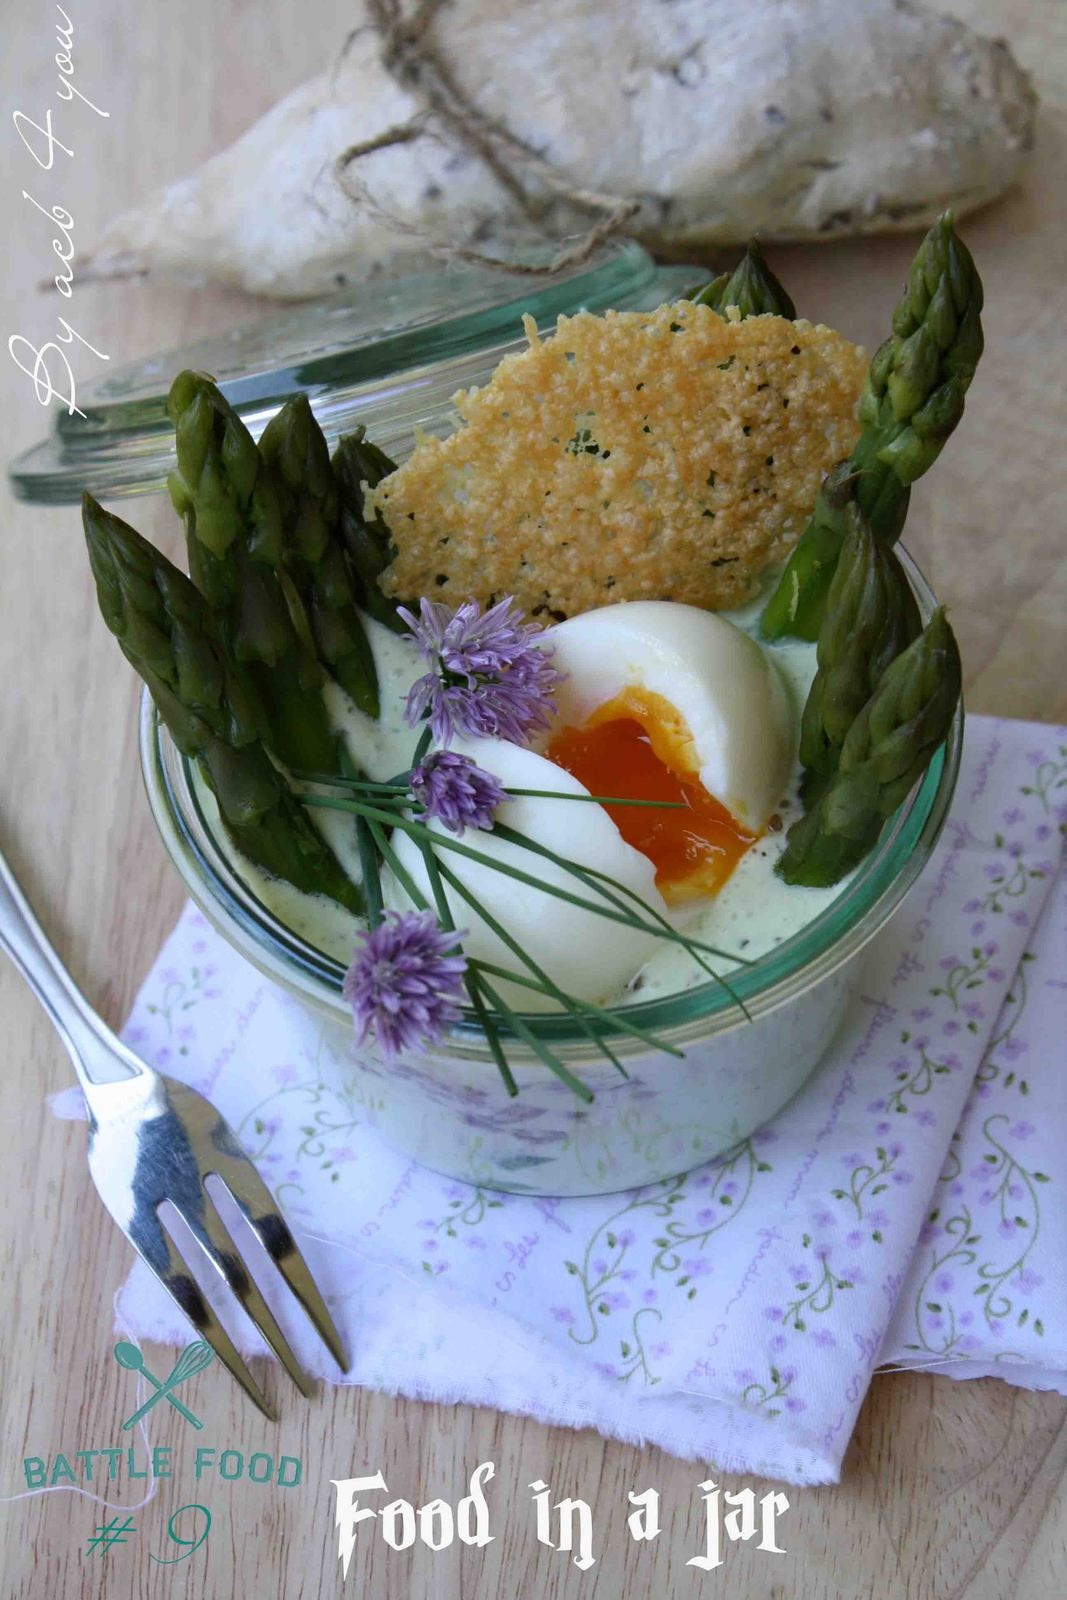 Nid d'asperges en bocal {battle food #9}